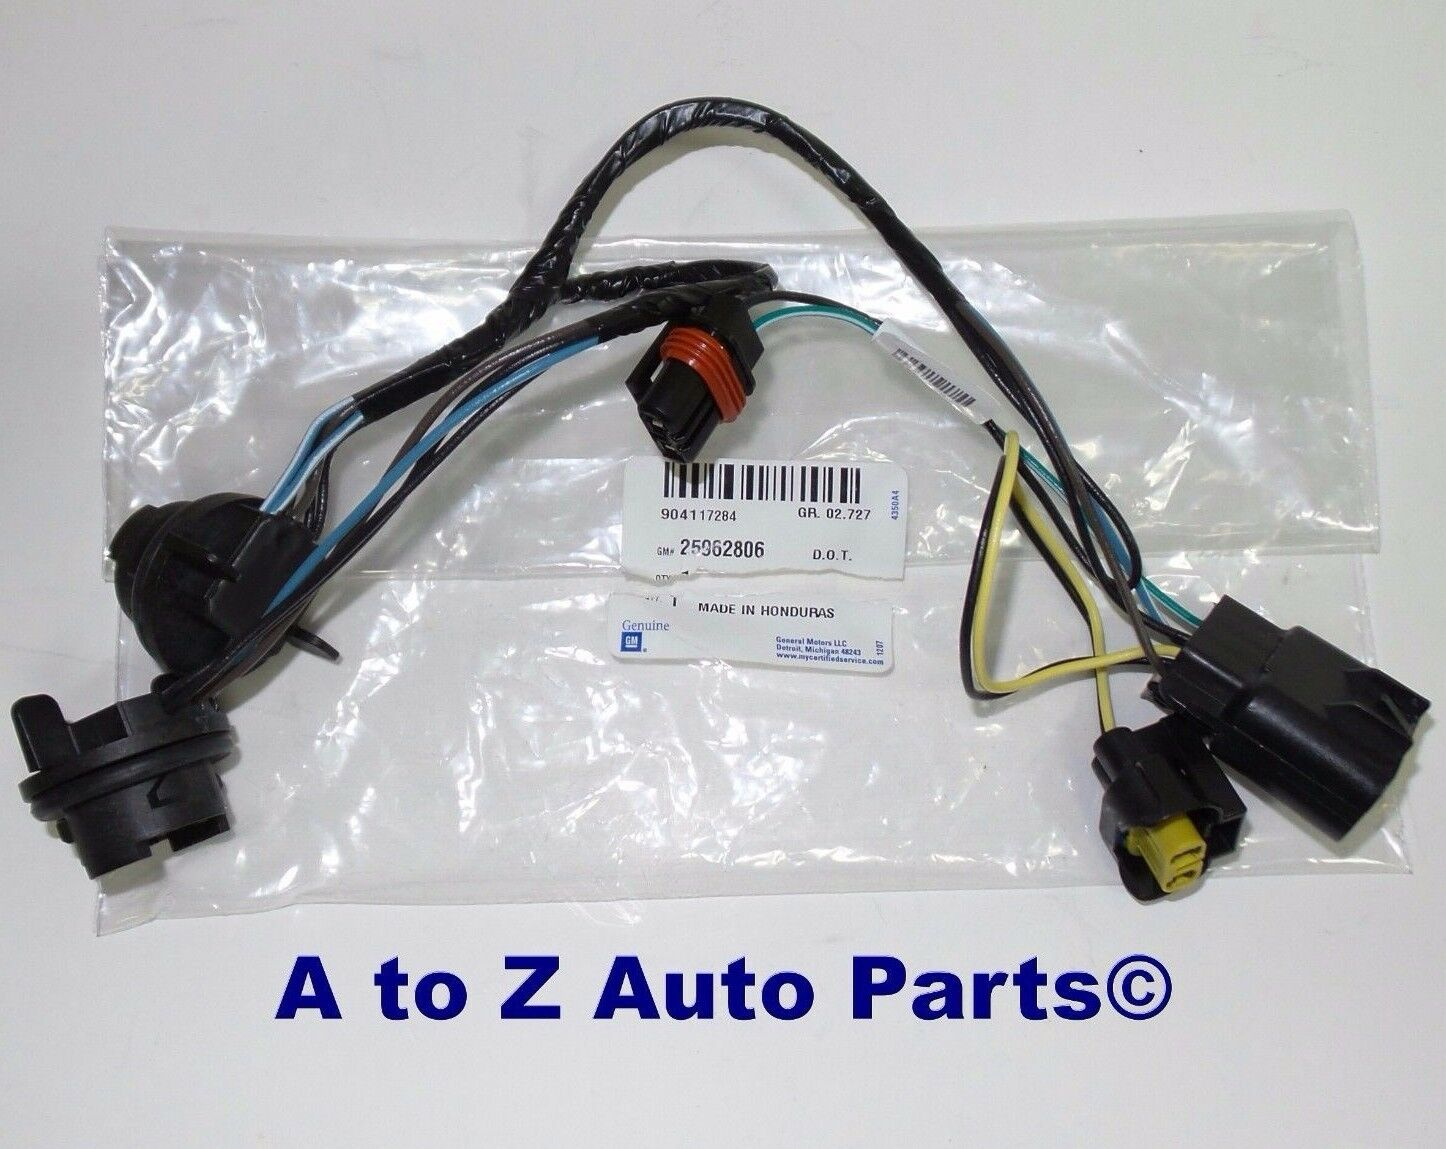 NEW 2007-2013 Chevrolet Silverado Headlight Wiring Harness, OEM GM 1 of  3FREE Shipping See More